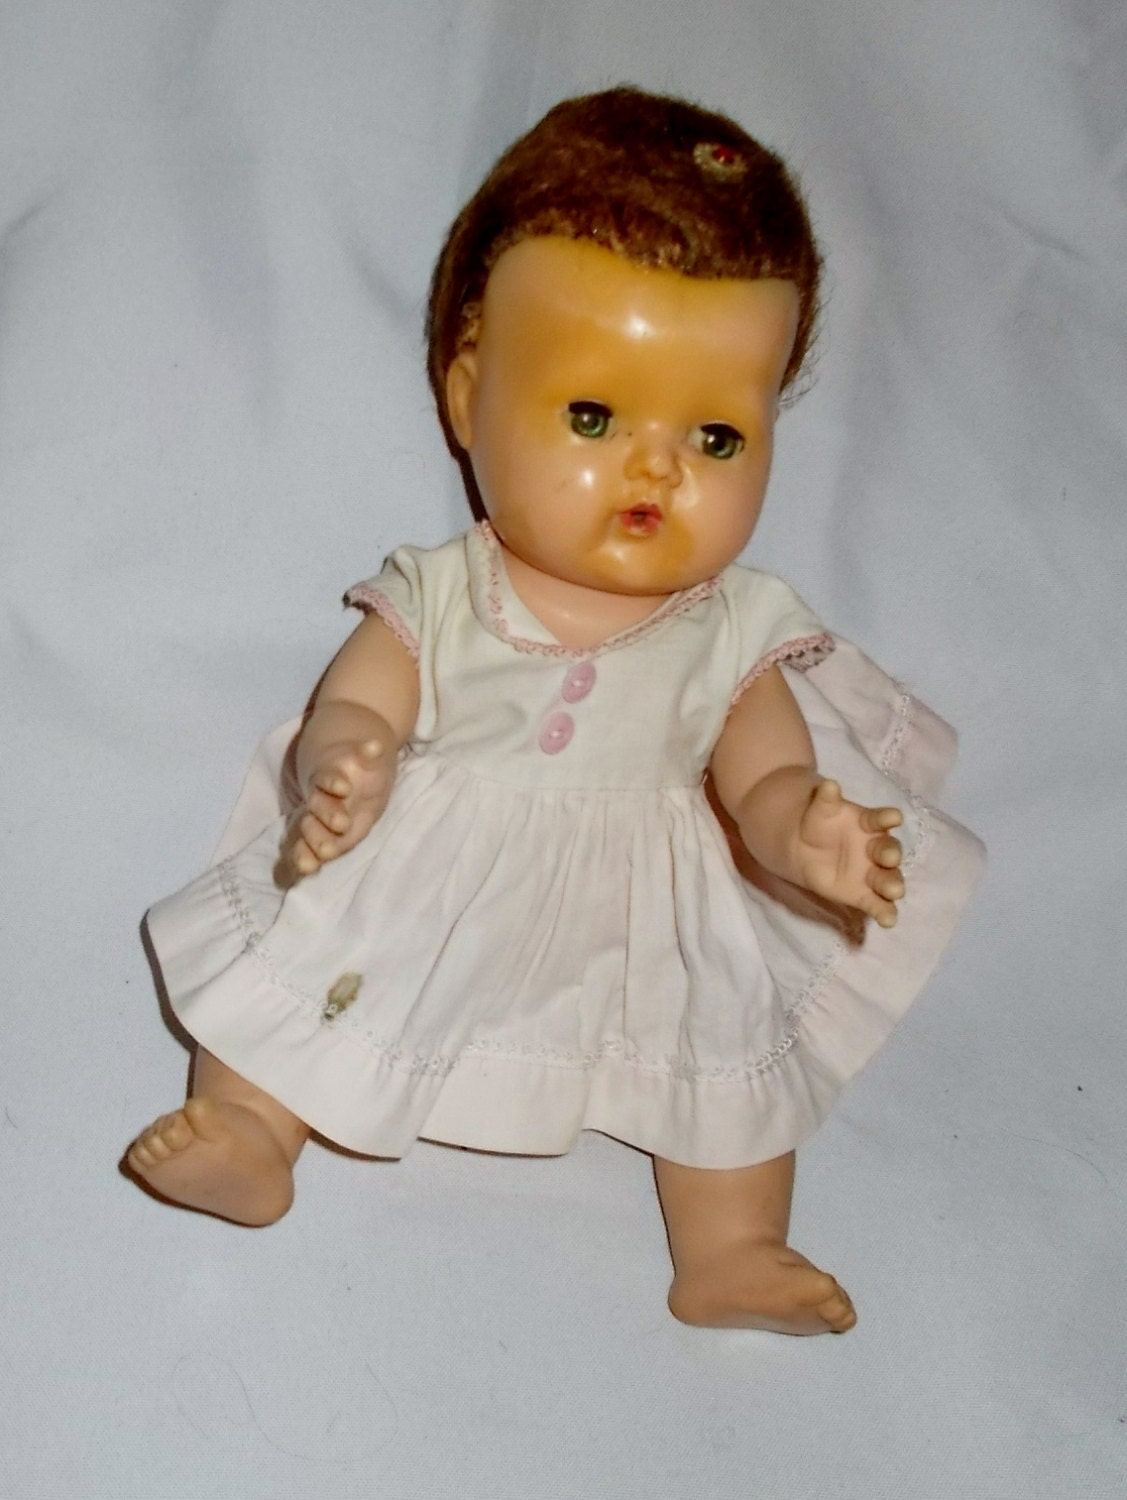 Small Toy Dolls : Vintage tiny tears doll american character original dress